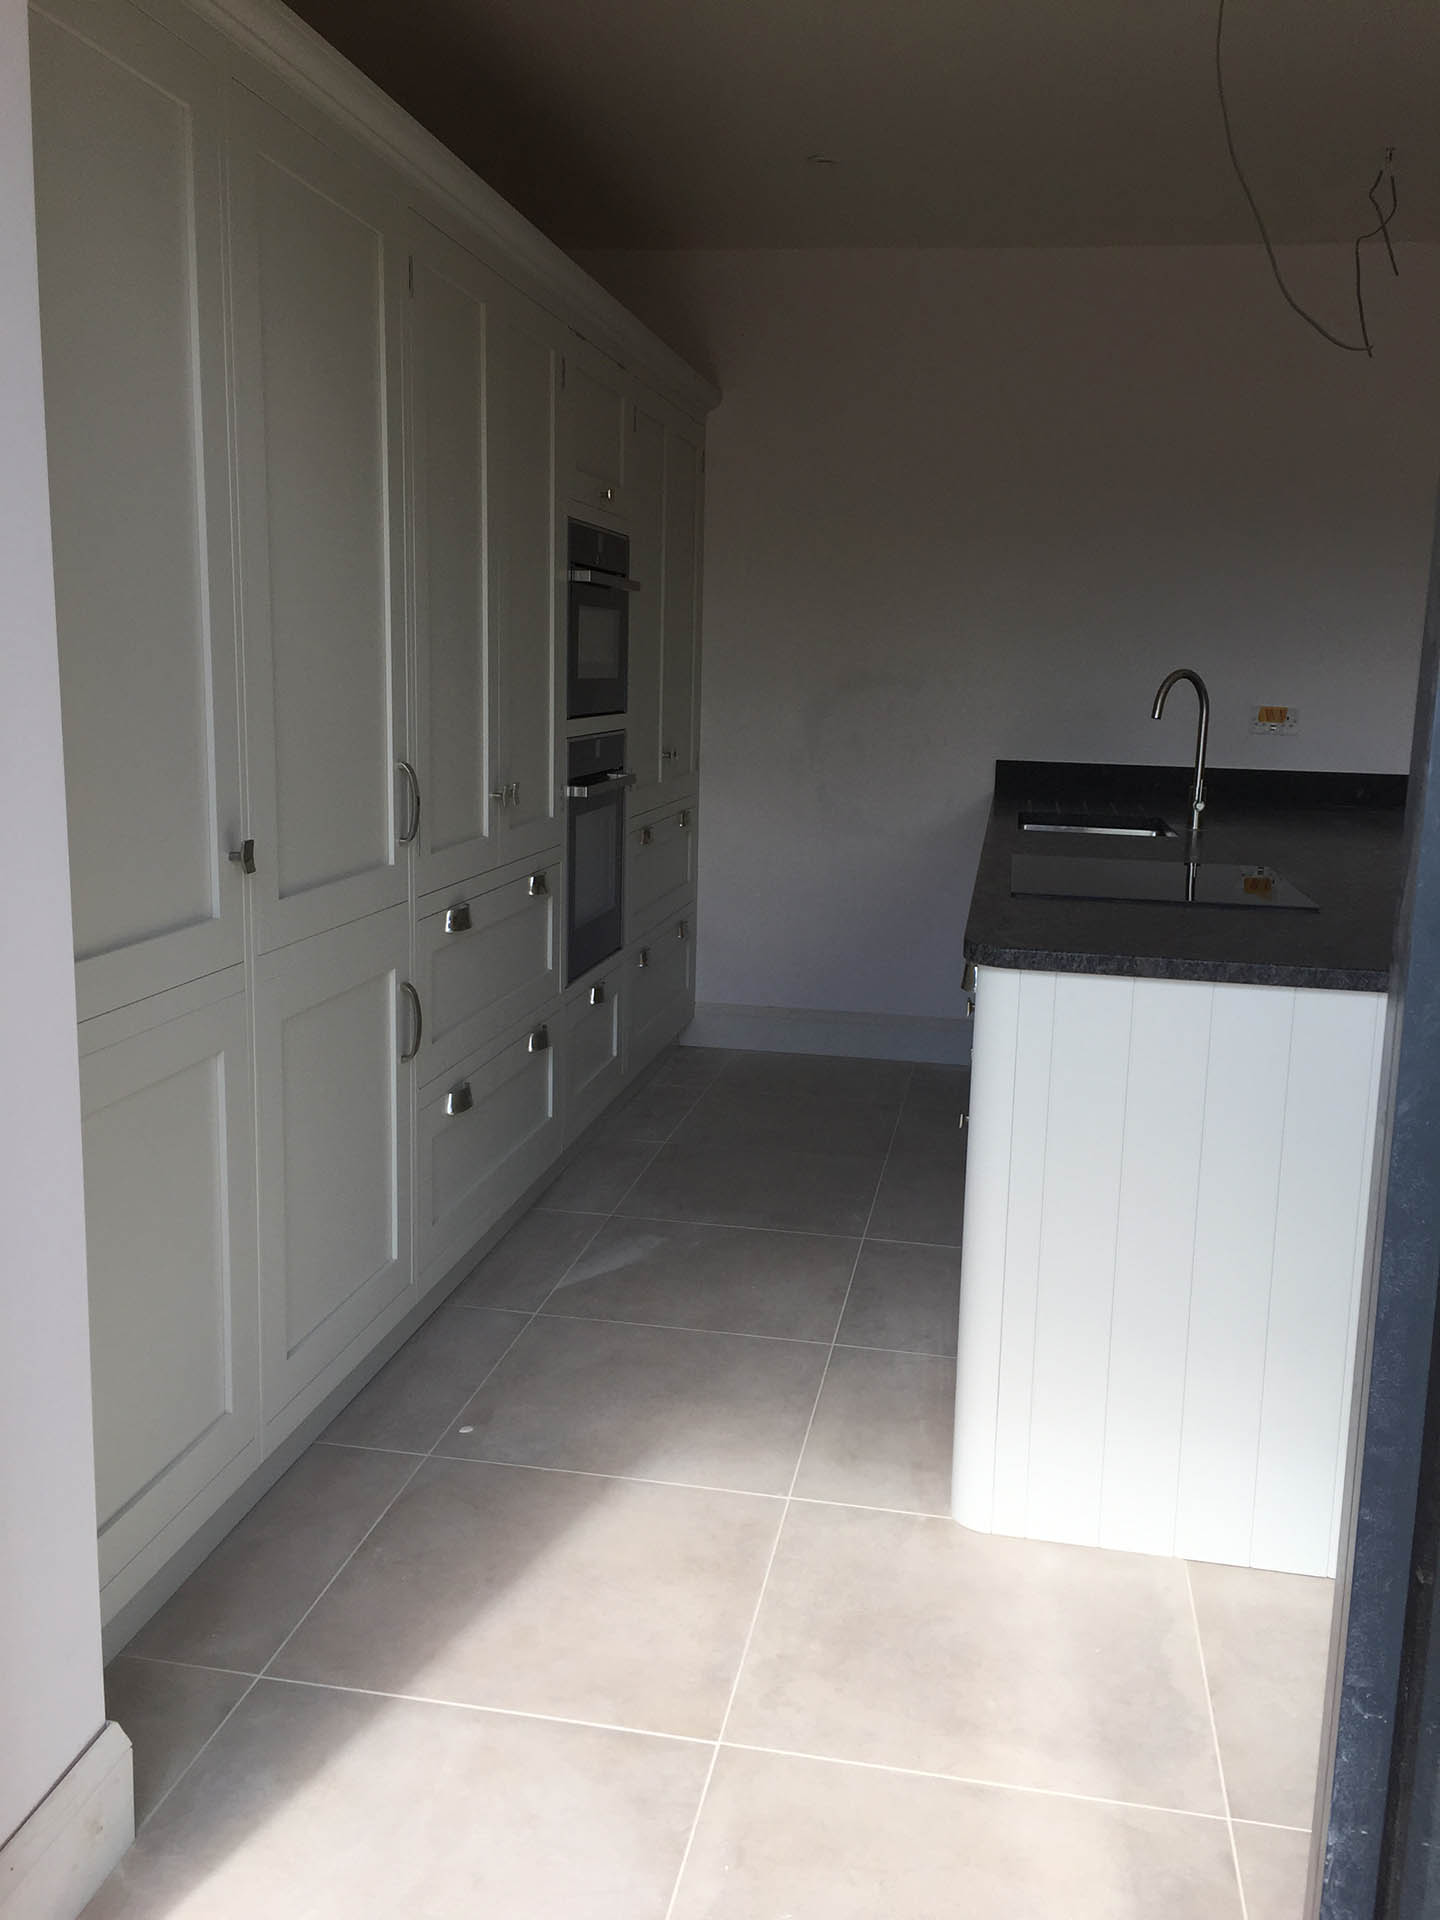 A view of one side of the kitchen showing cupboards